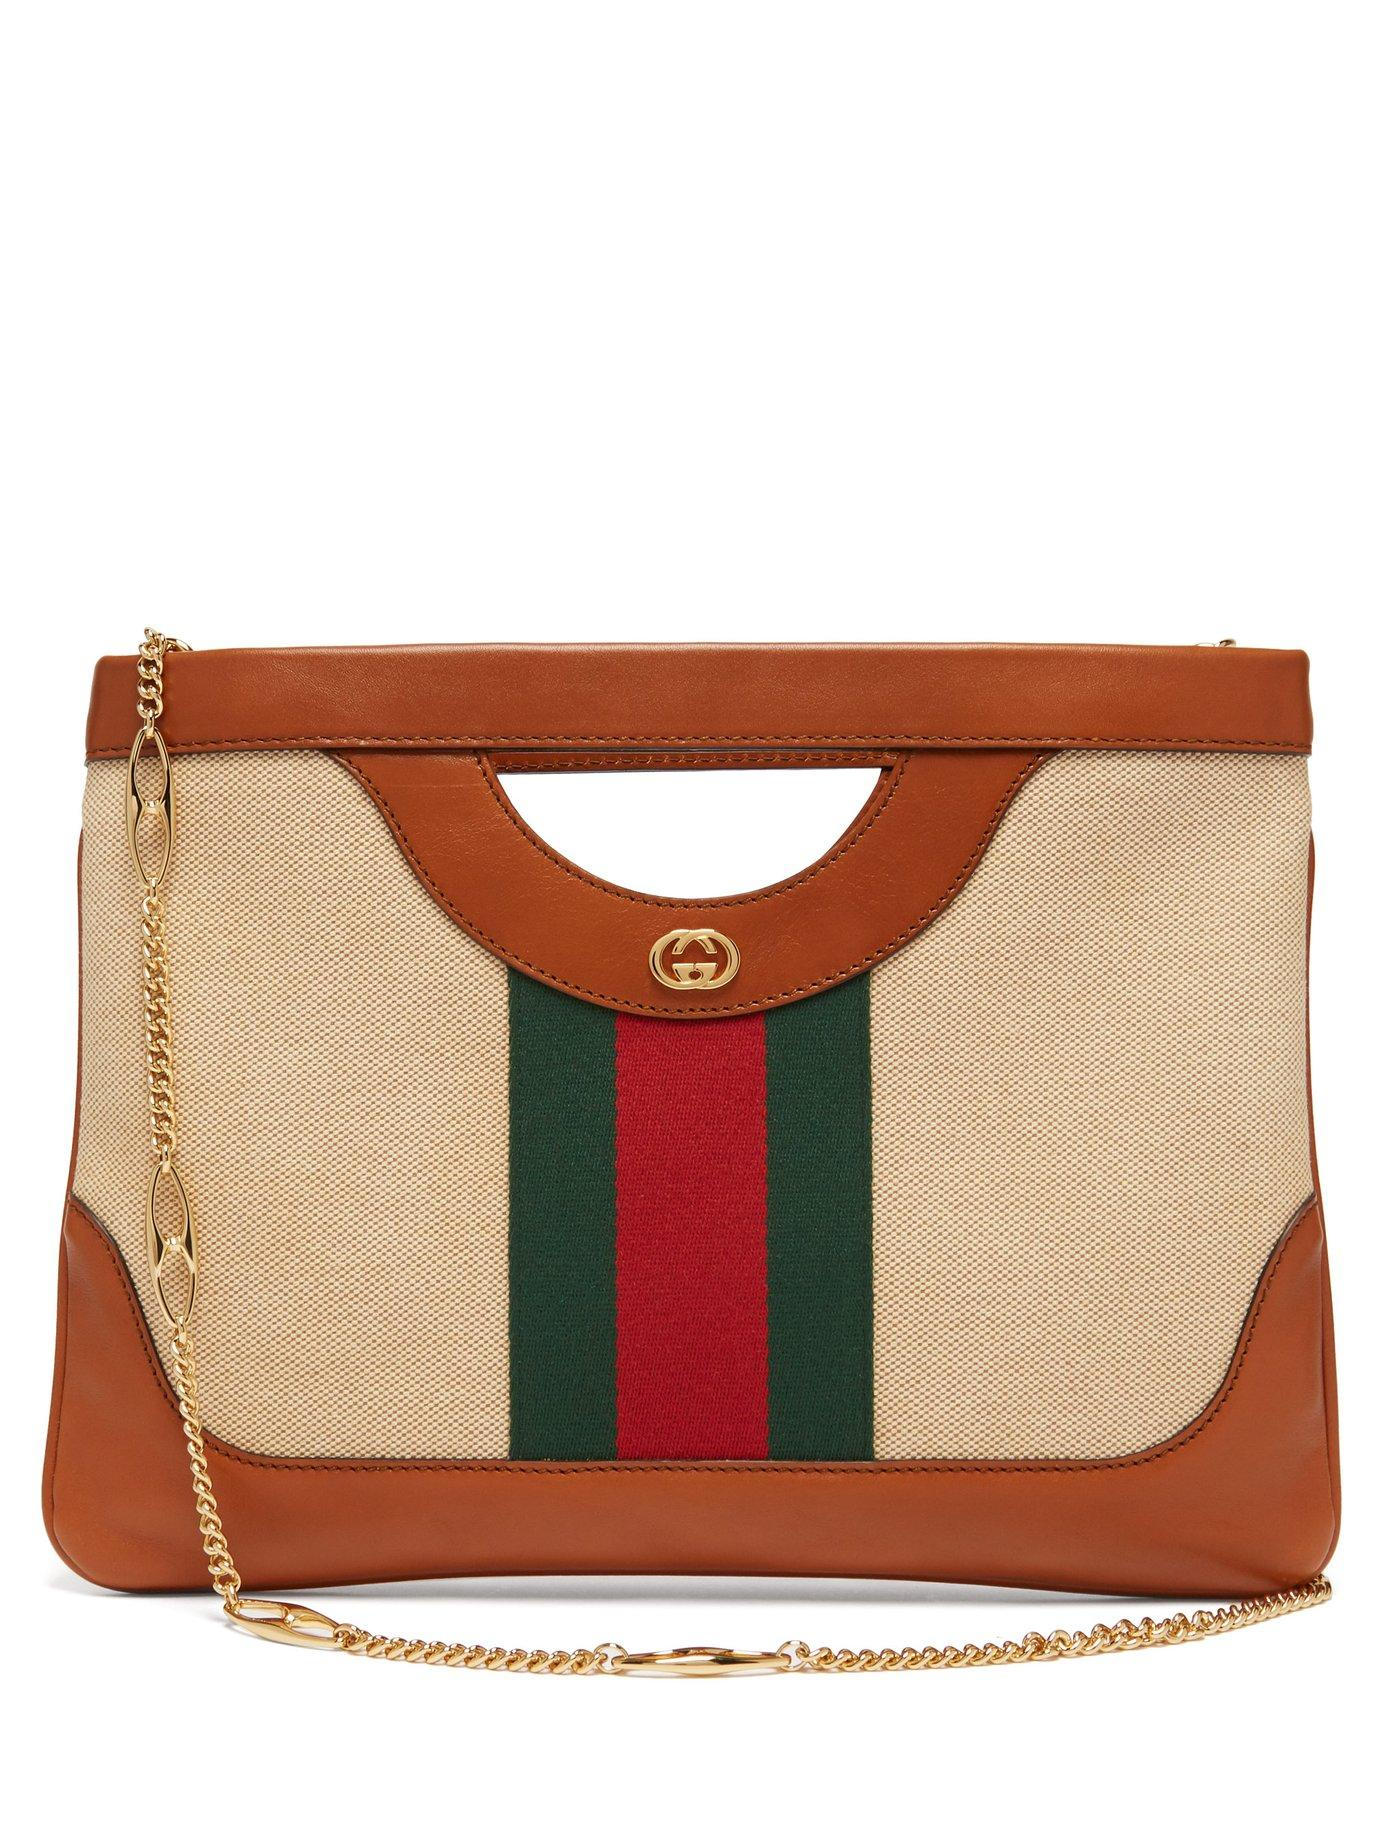 49fe6dba0d0 Gucci. Women s Web Stripe Canvas And Leather Tote Bag